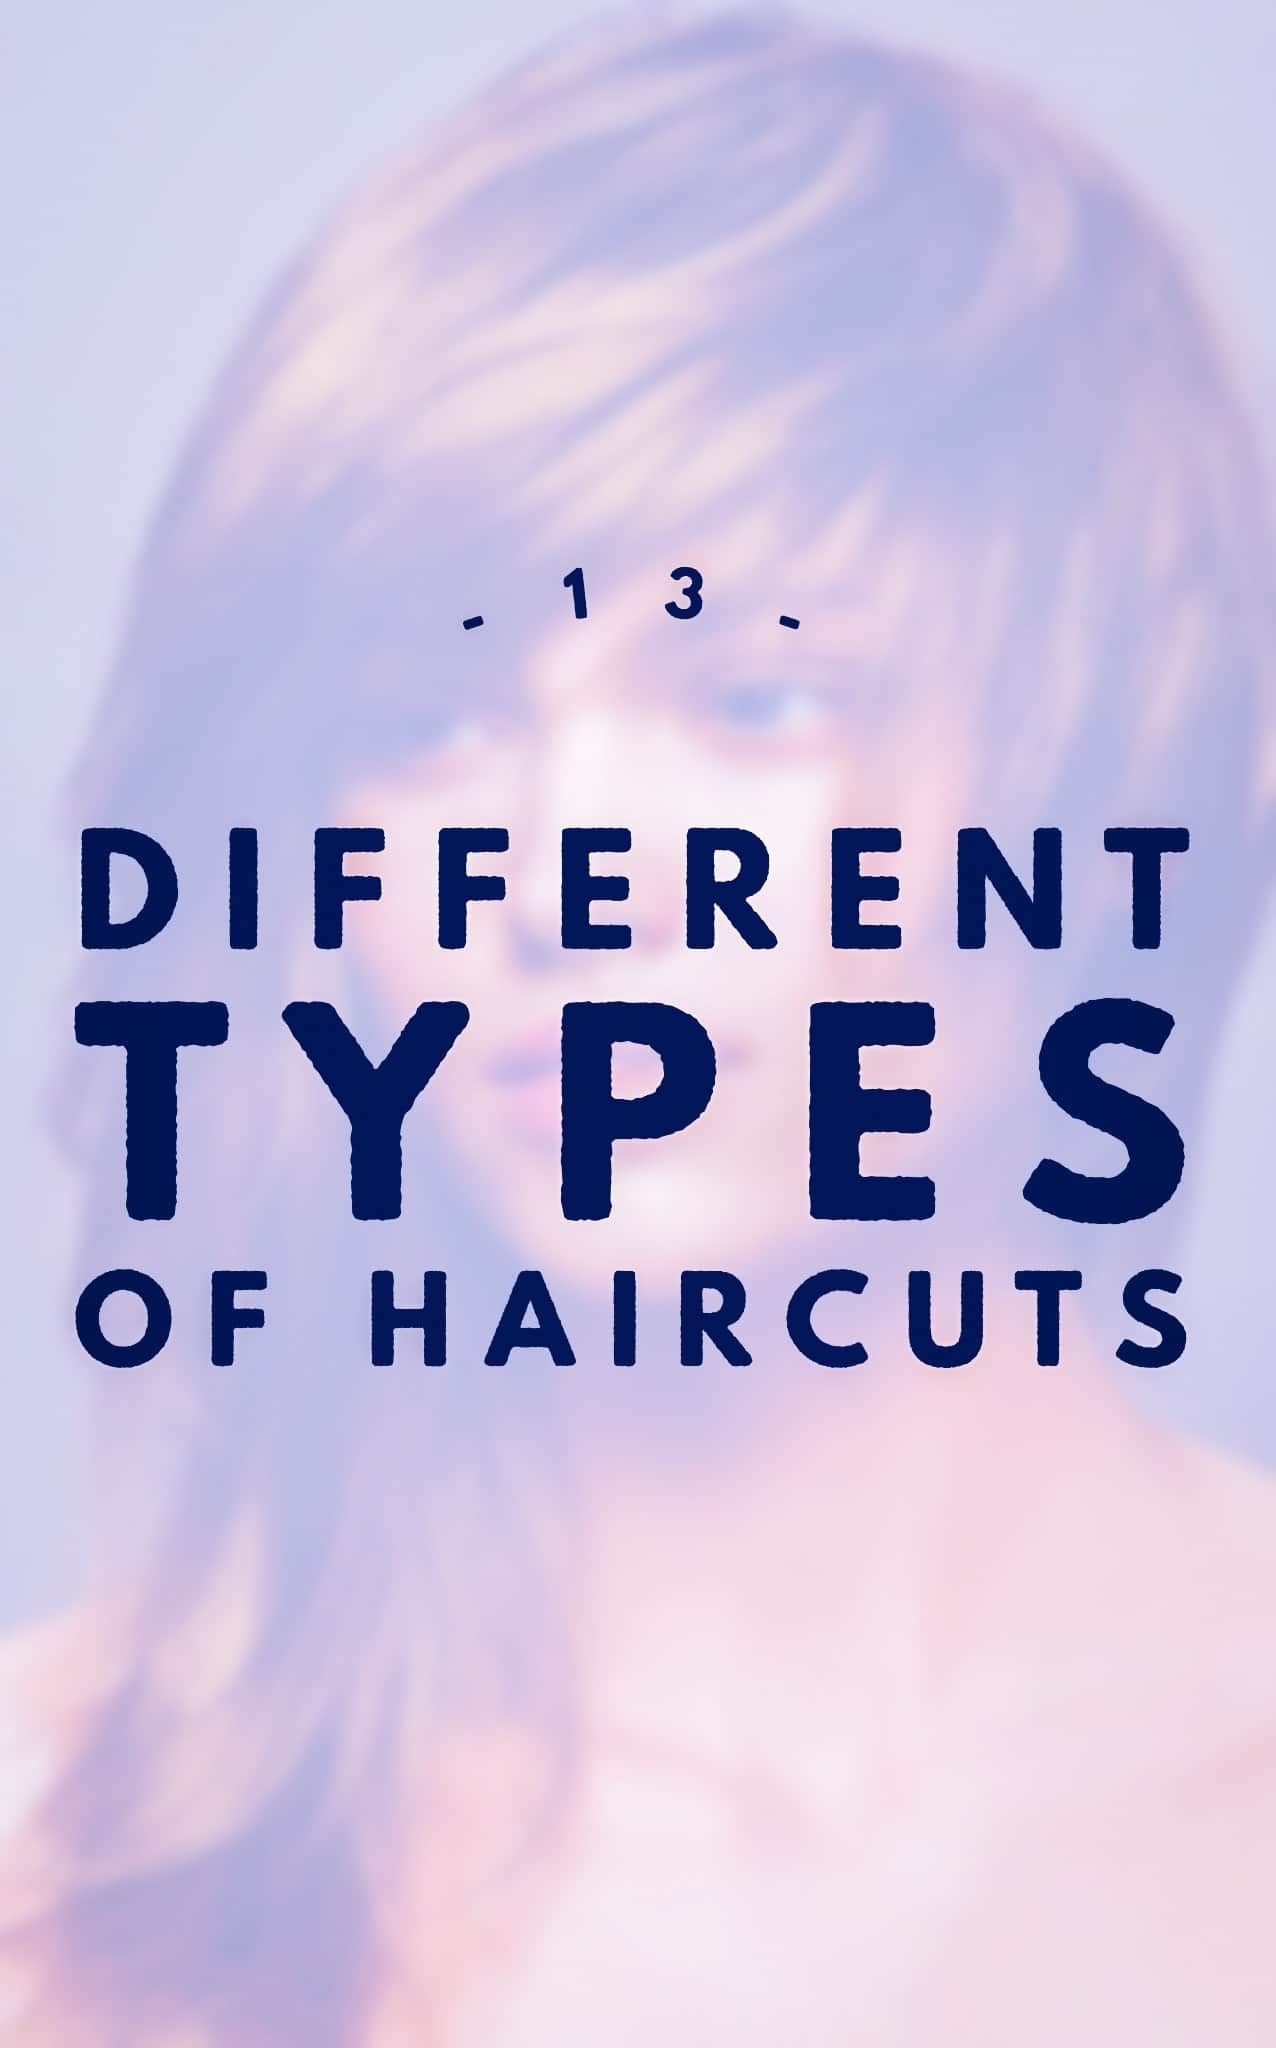 different types of haircuts haircuts hair style and beauty blogs